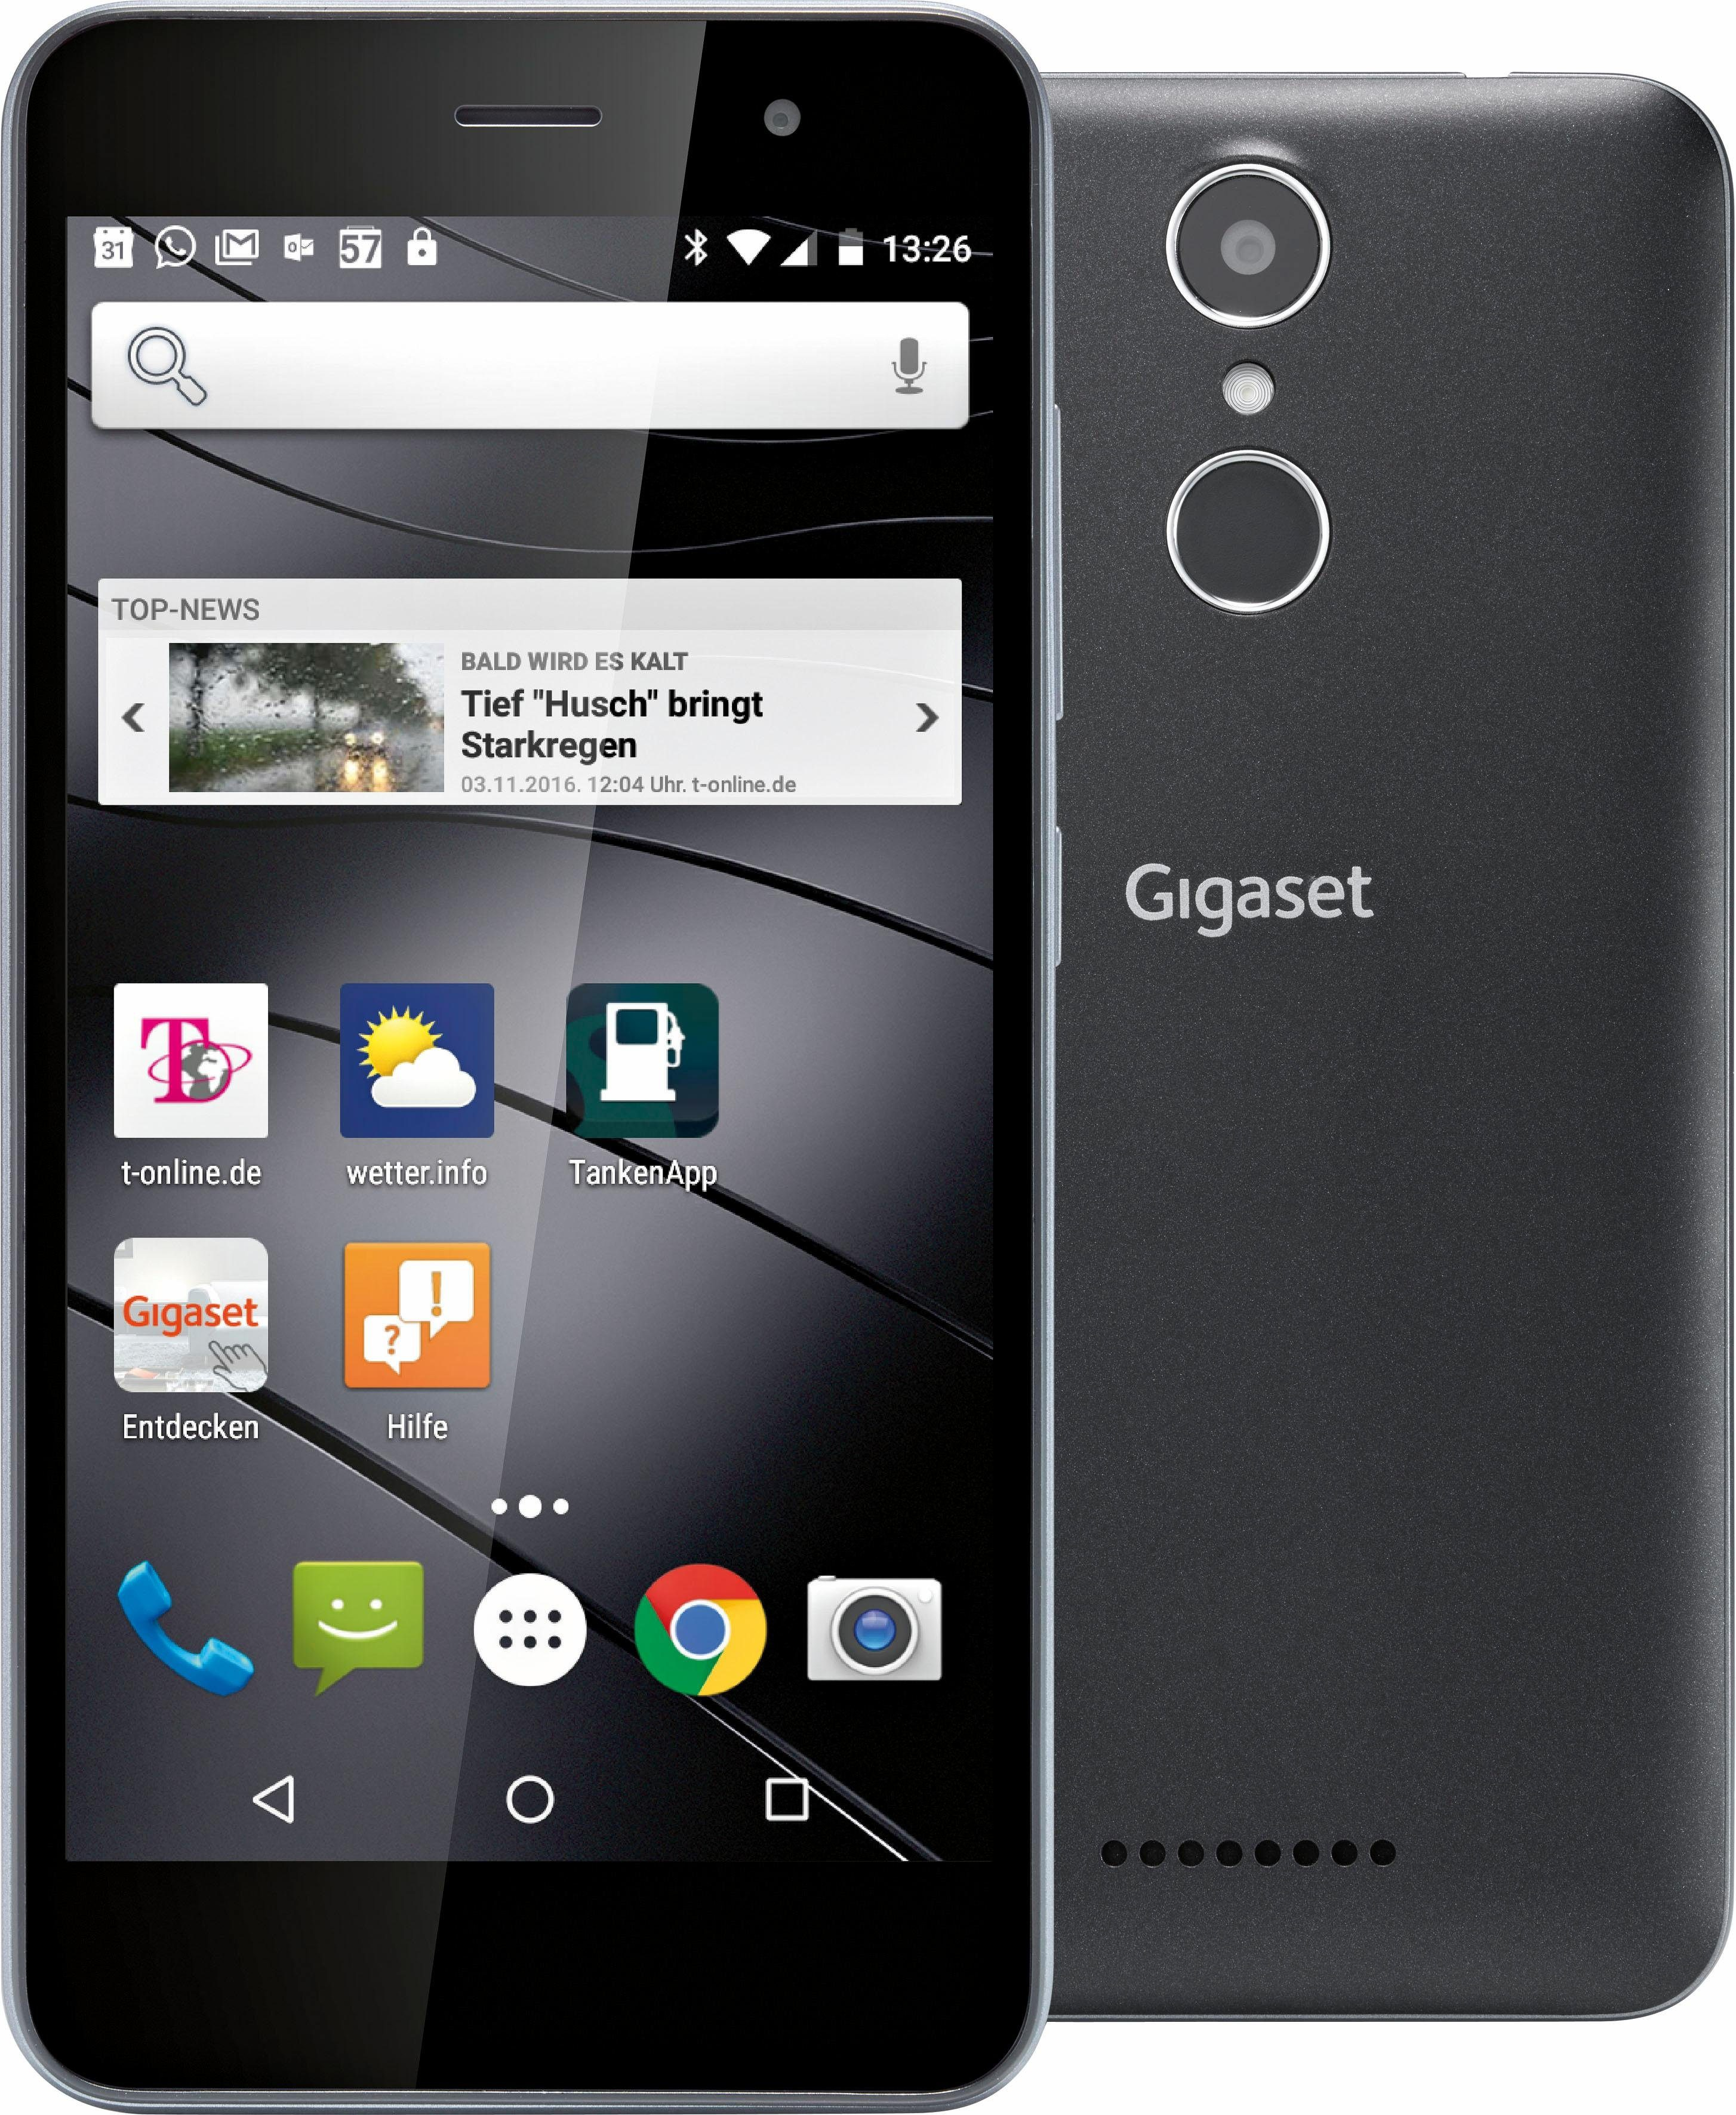 Gigaset GS160 Smartphone, 12,6 cm (5 Zoll) Display, LTE (4G), Android 6.0 (Marshmallow)